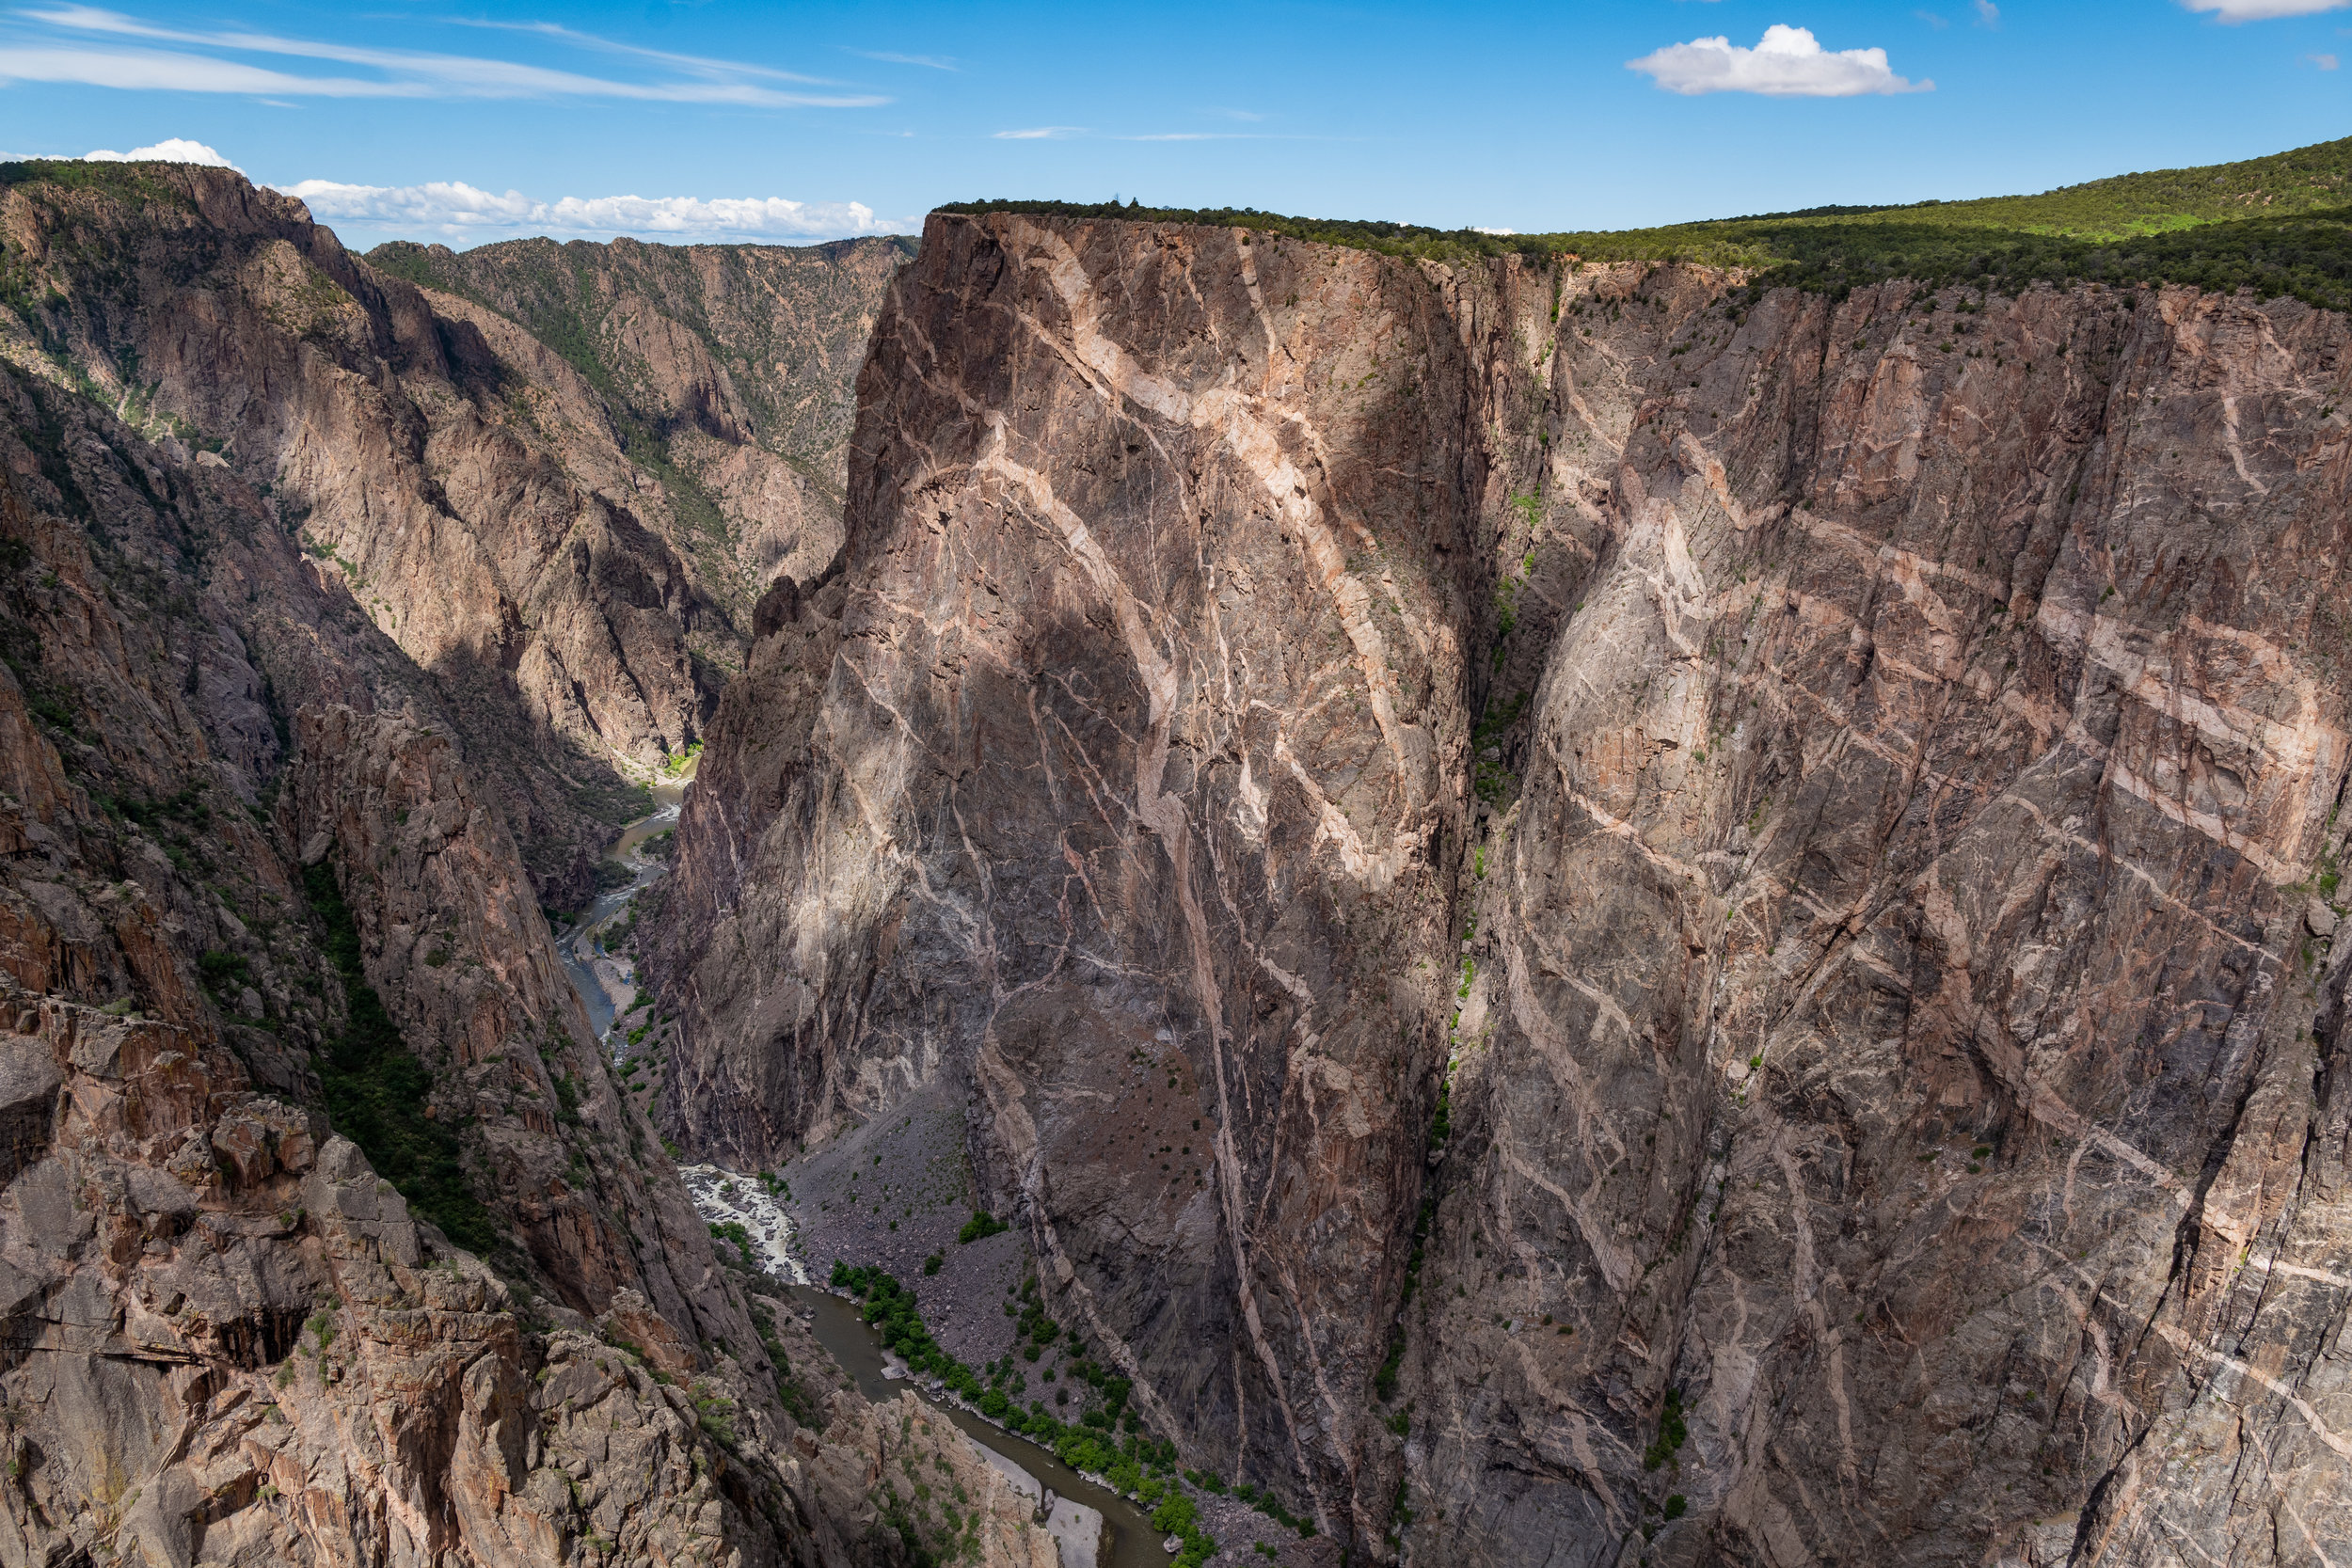 black canyon of the gunnison - Named for its deep, sunless chasms descending 2,722 feet from rim to river at its greatest depth, Black Canyon of the Gunnison is regarded as one of North America's most impressive canyons.